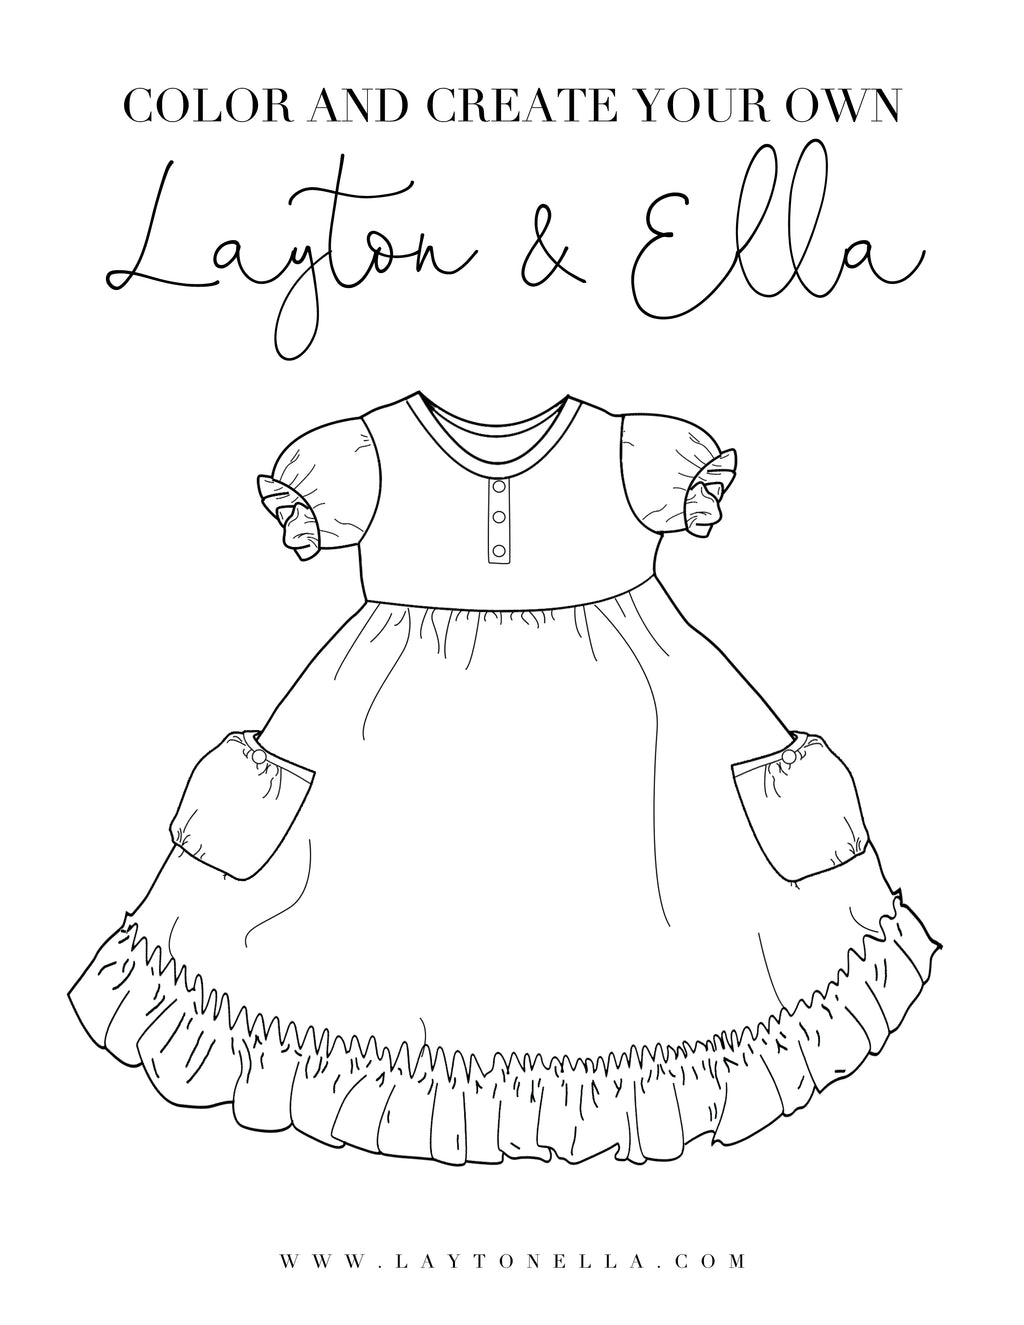 Free Coloring Page Downloads - Layton & Co